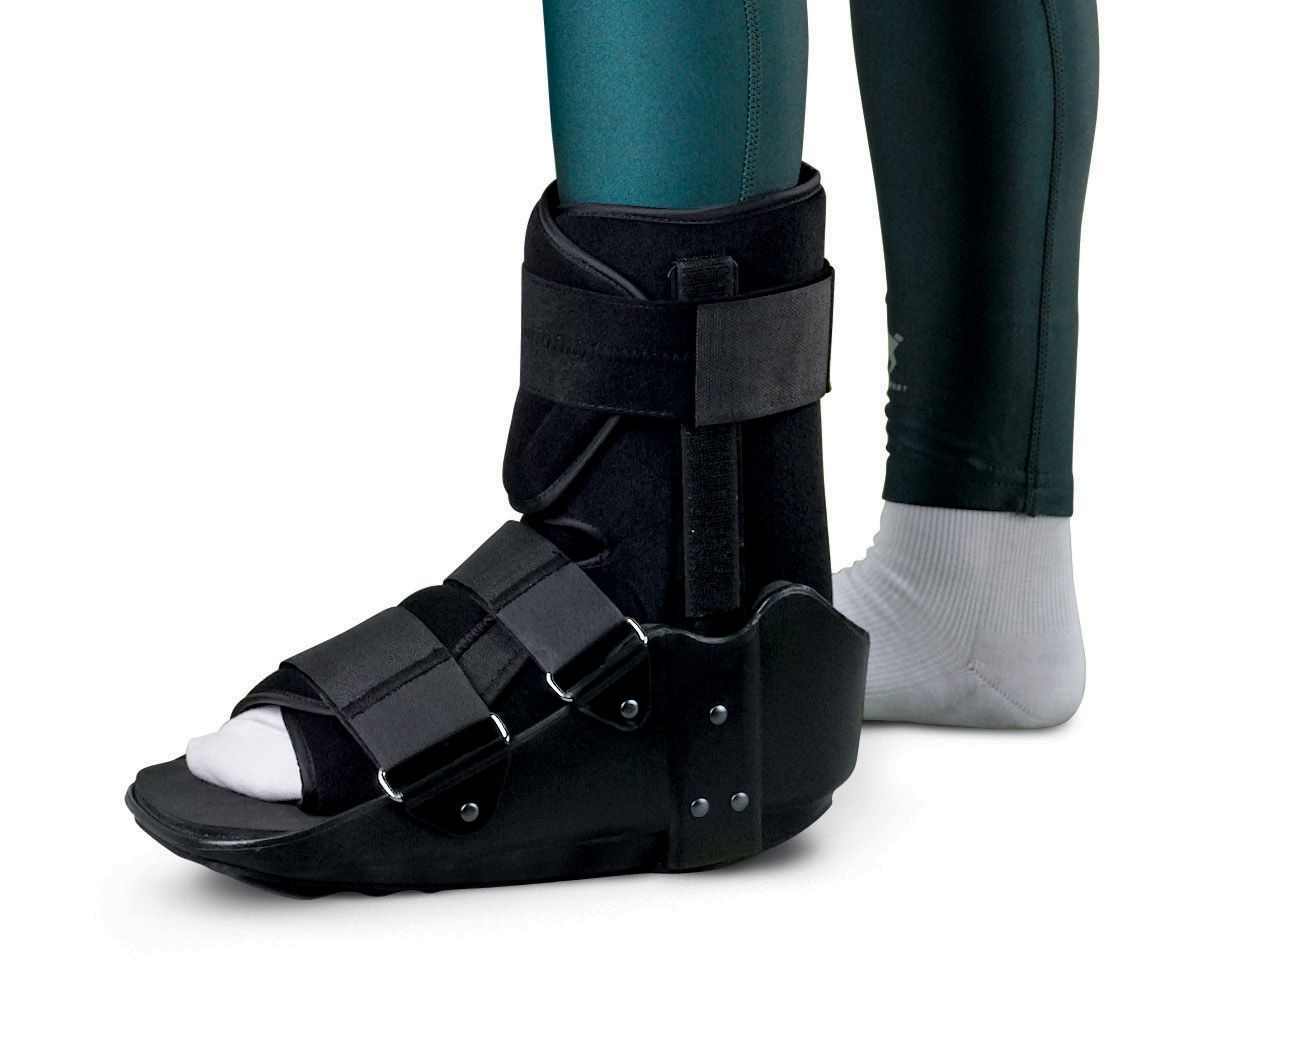 Medline Standard Ankle Walker - Ambi, Nonskid, Xl, Each - Model ORT28200XL